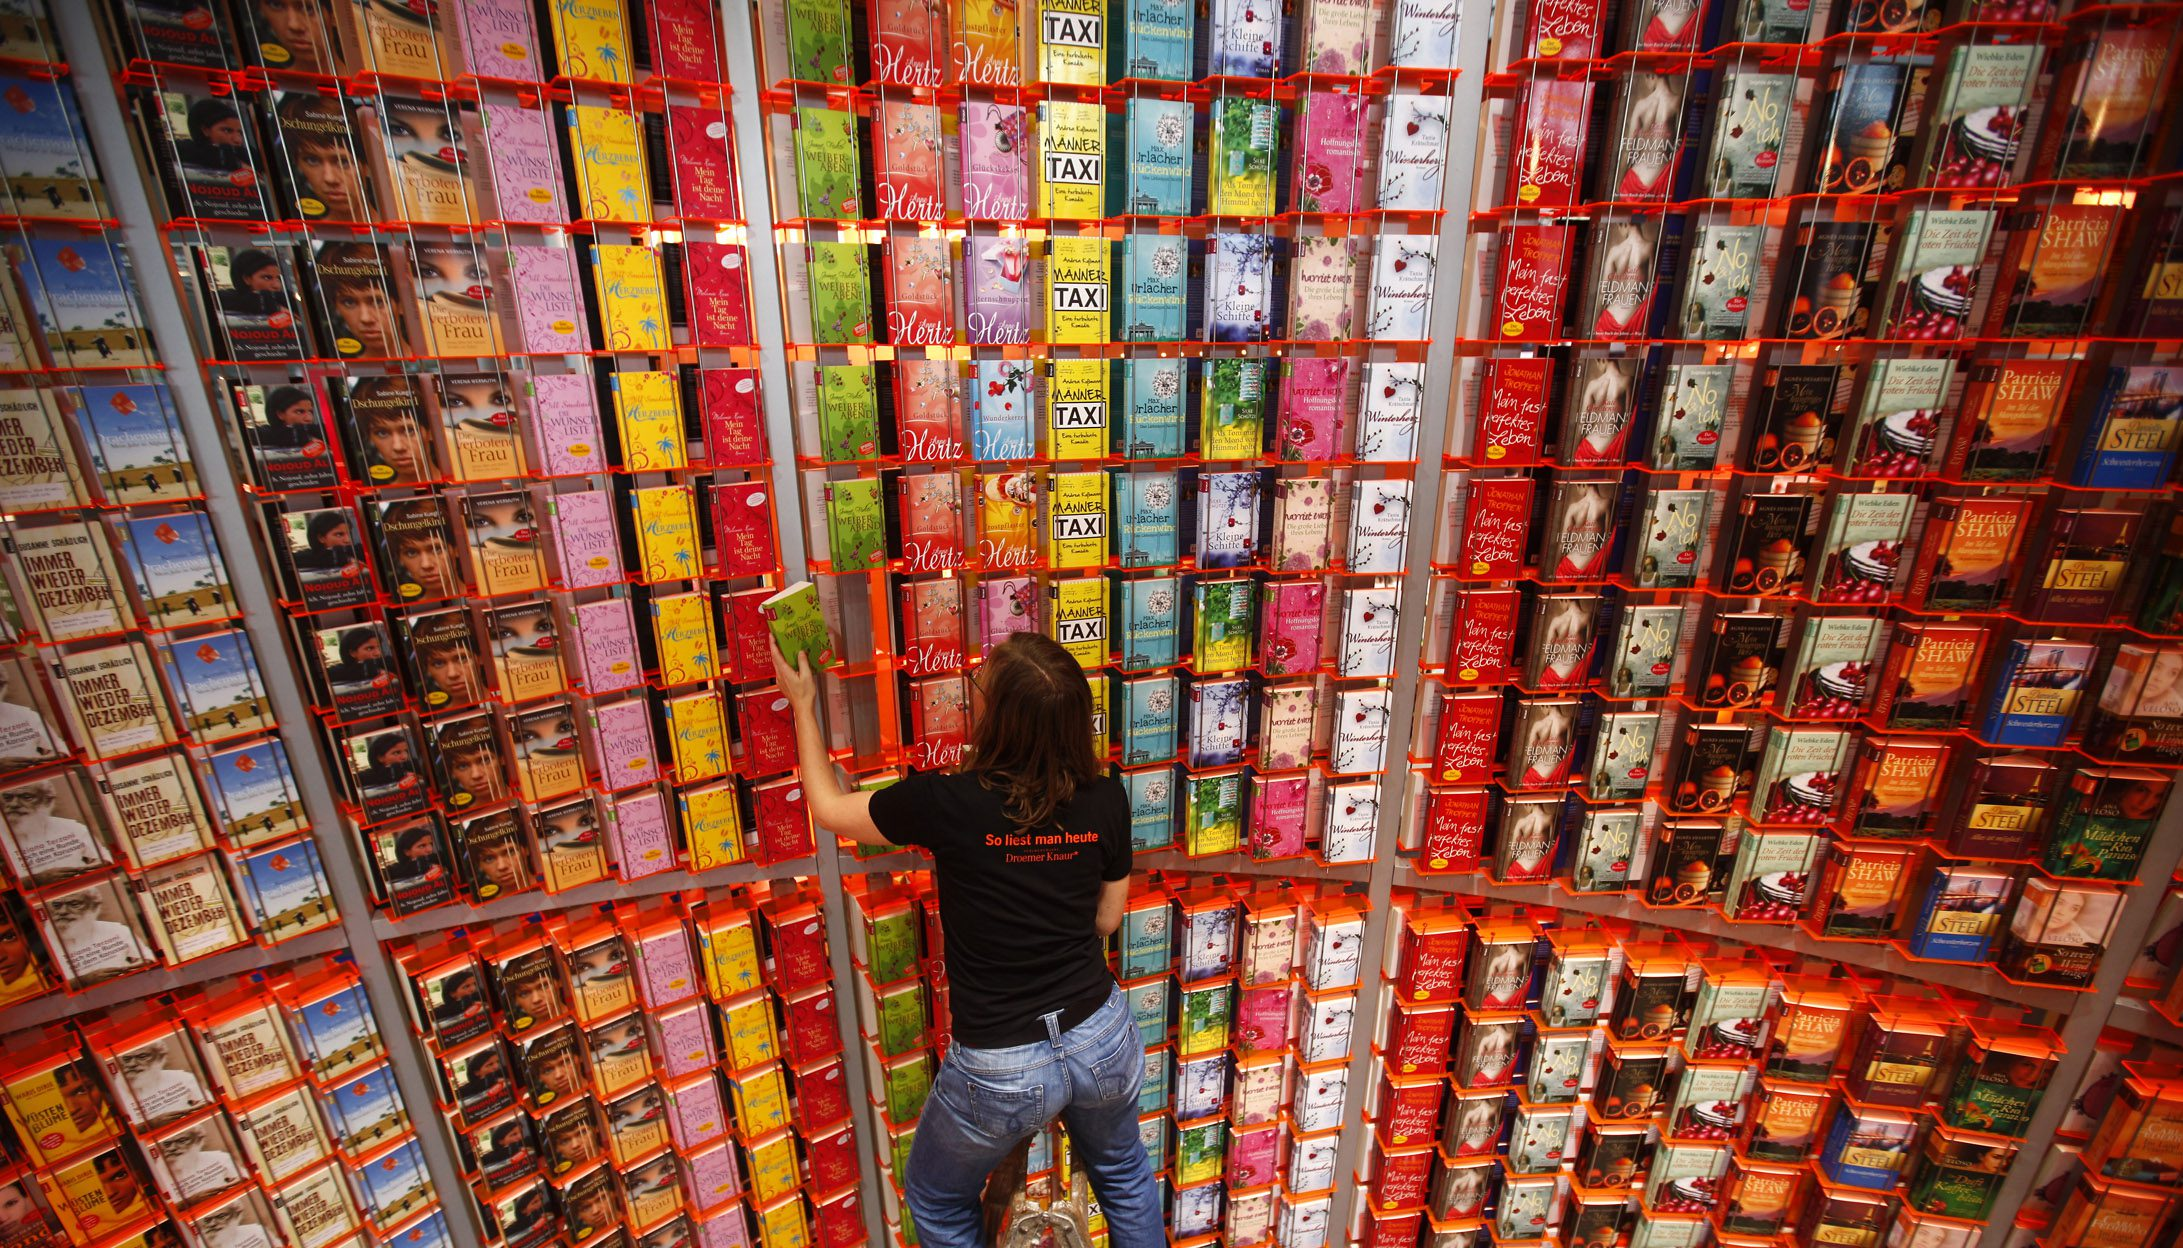 Sylvia Fleischer of German publishing house Droemer Knaur makes final adjustments on a huge bookshelf prior to the opening of the book fair in Frankfurt, October 5, 2010.